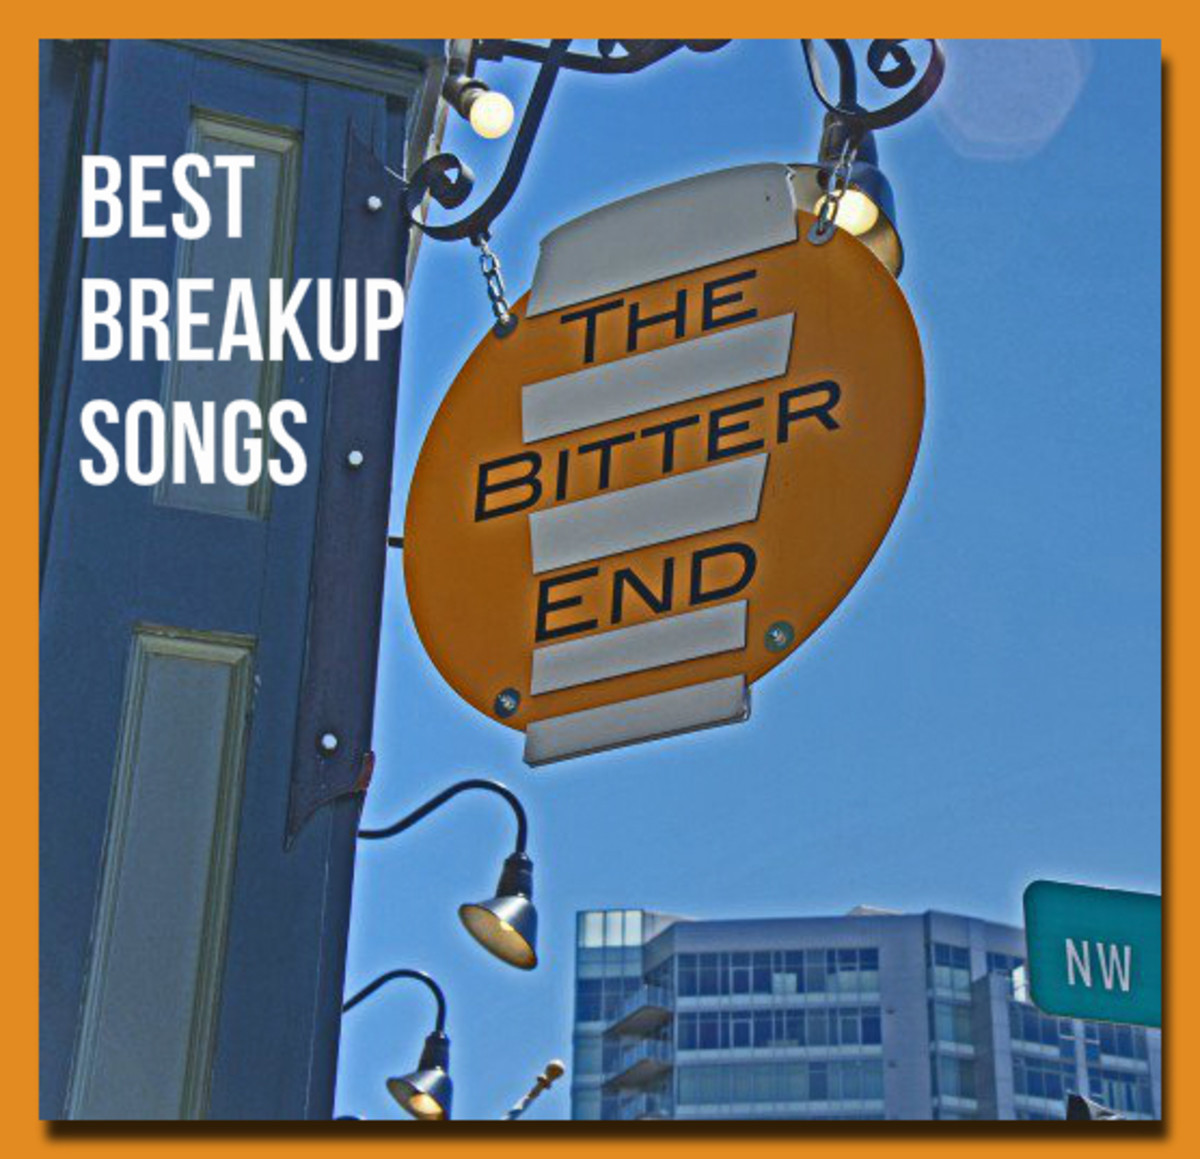 109 Songs About Breakups, Heartbreak, and Divorce